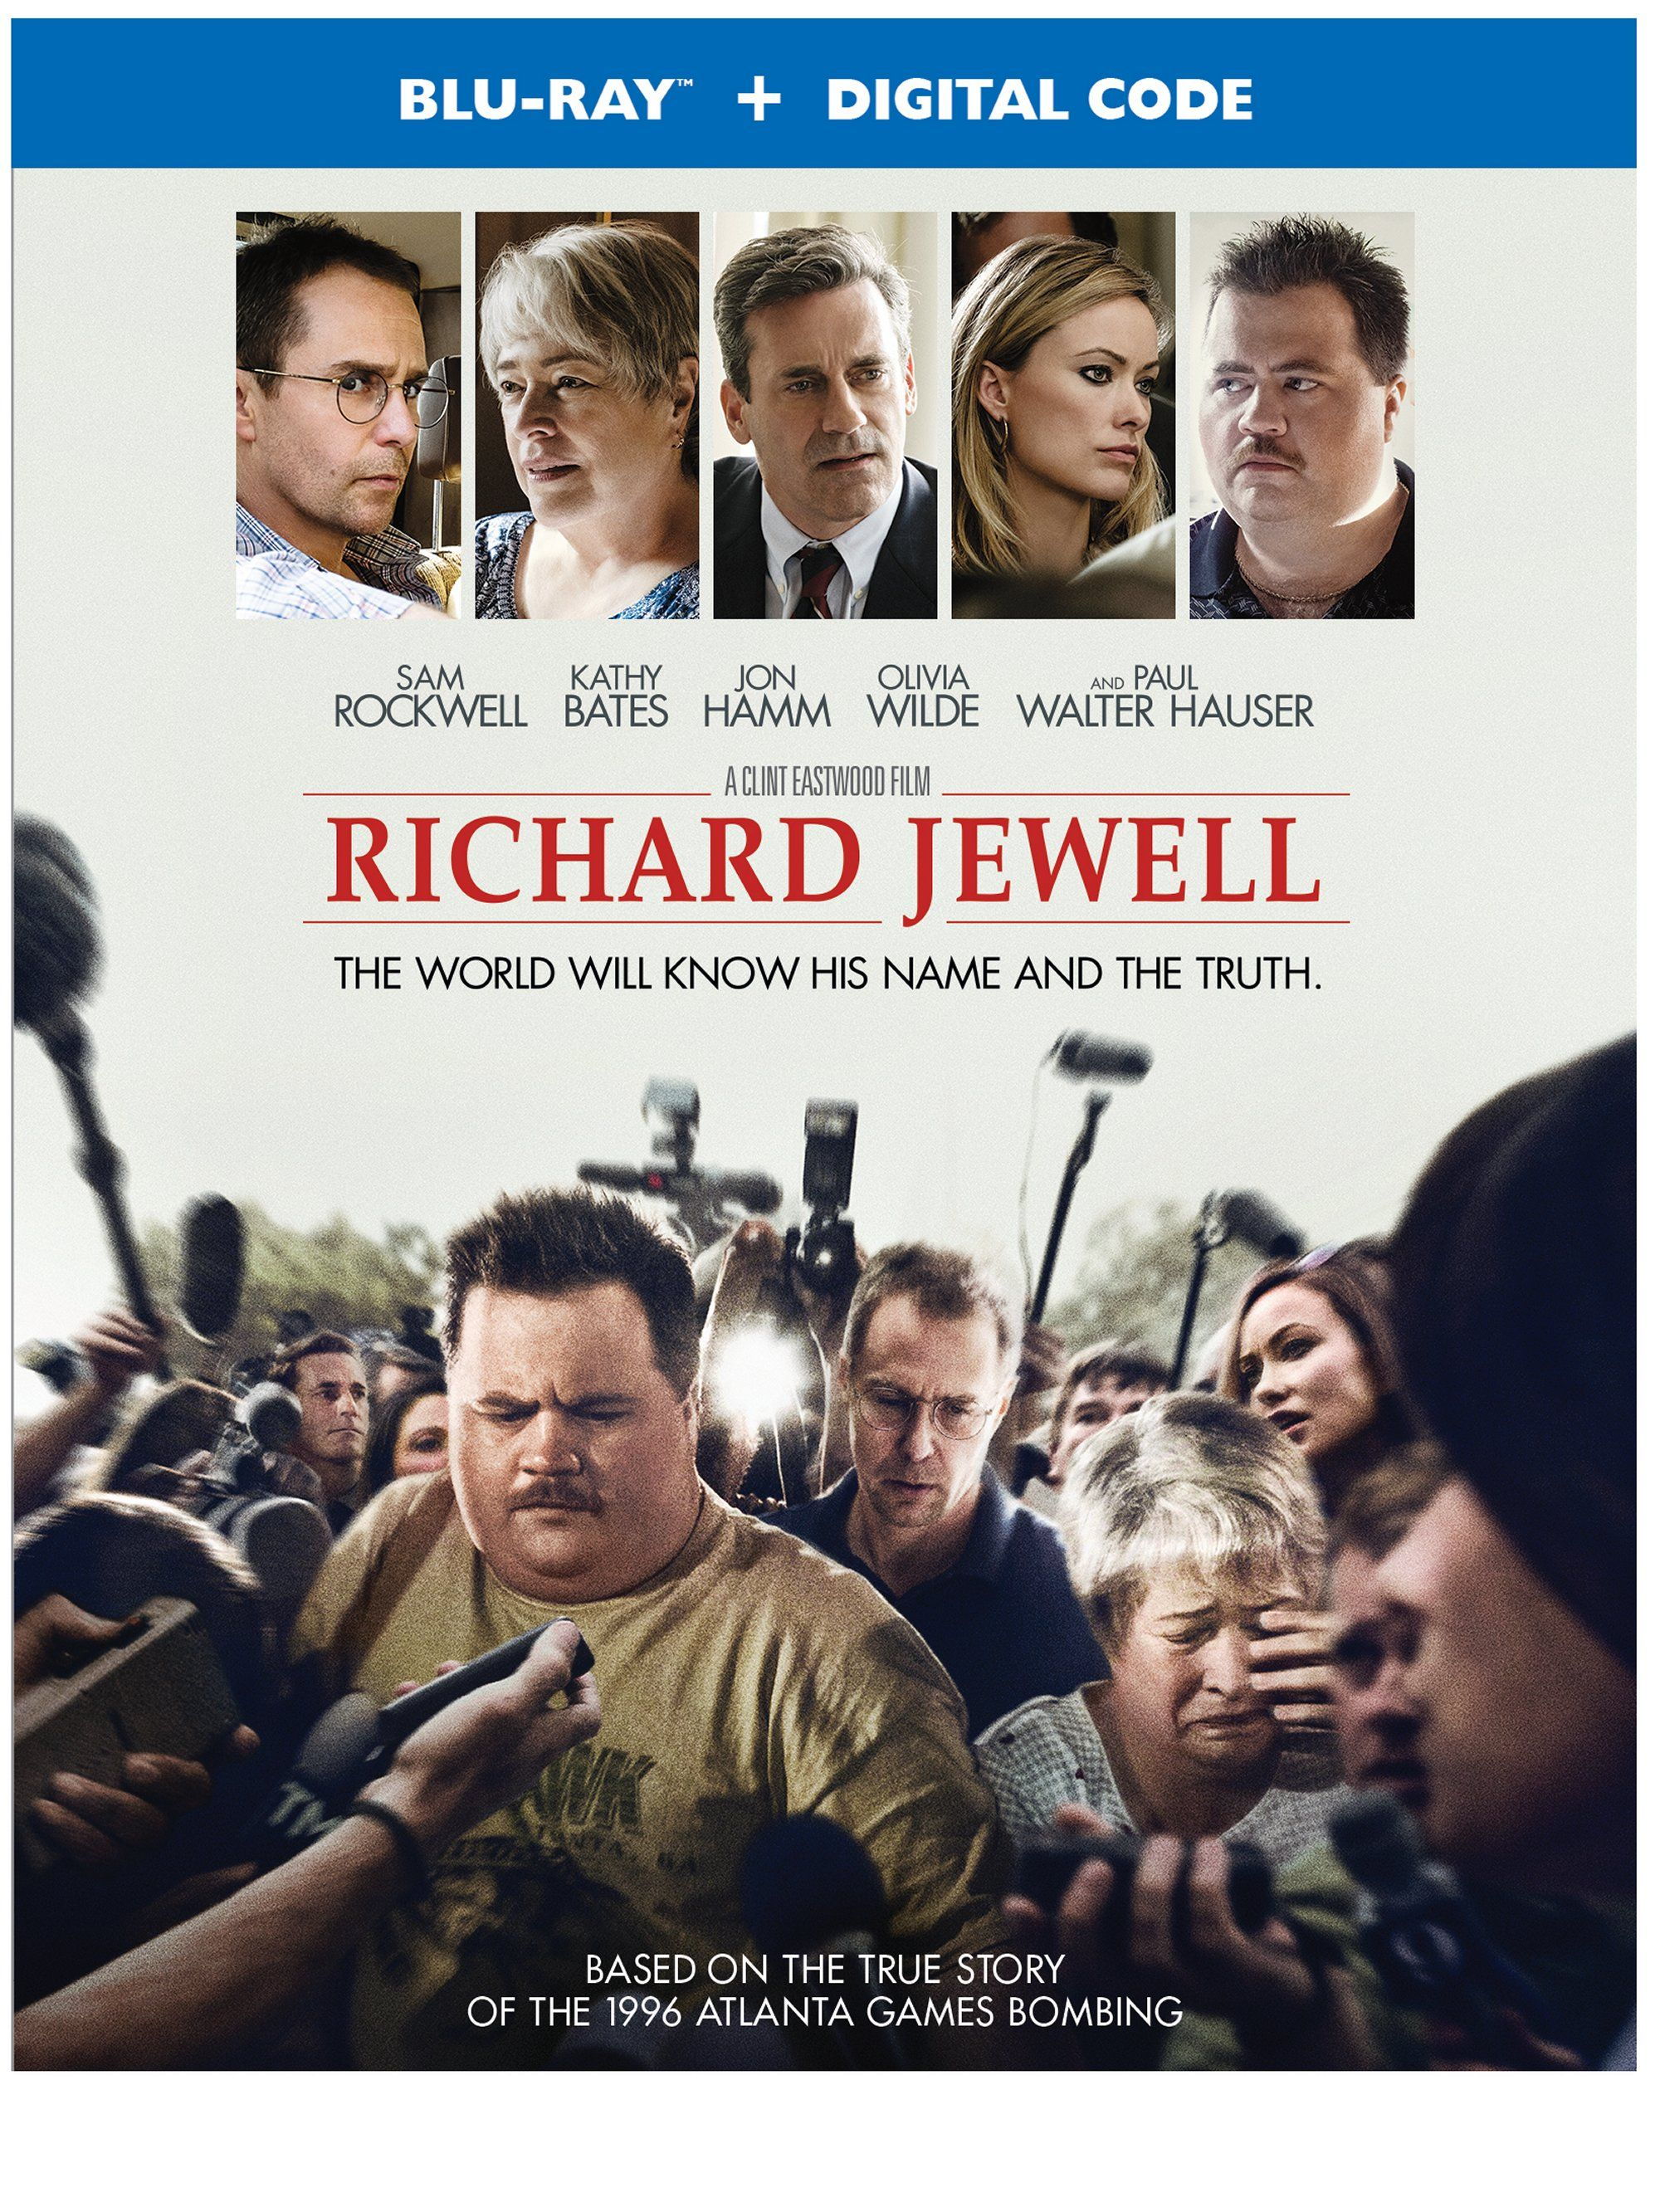 Richard Jewell Blu-ray